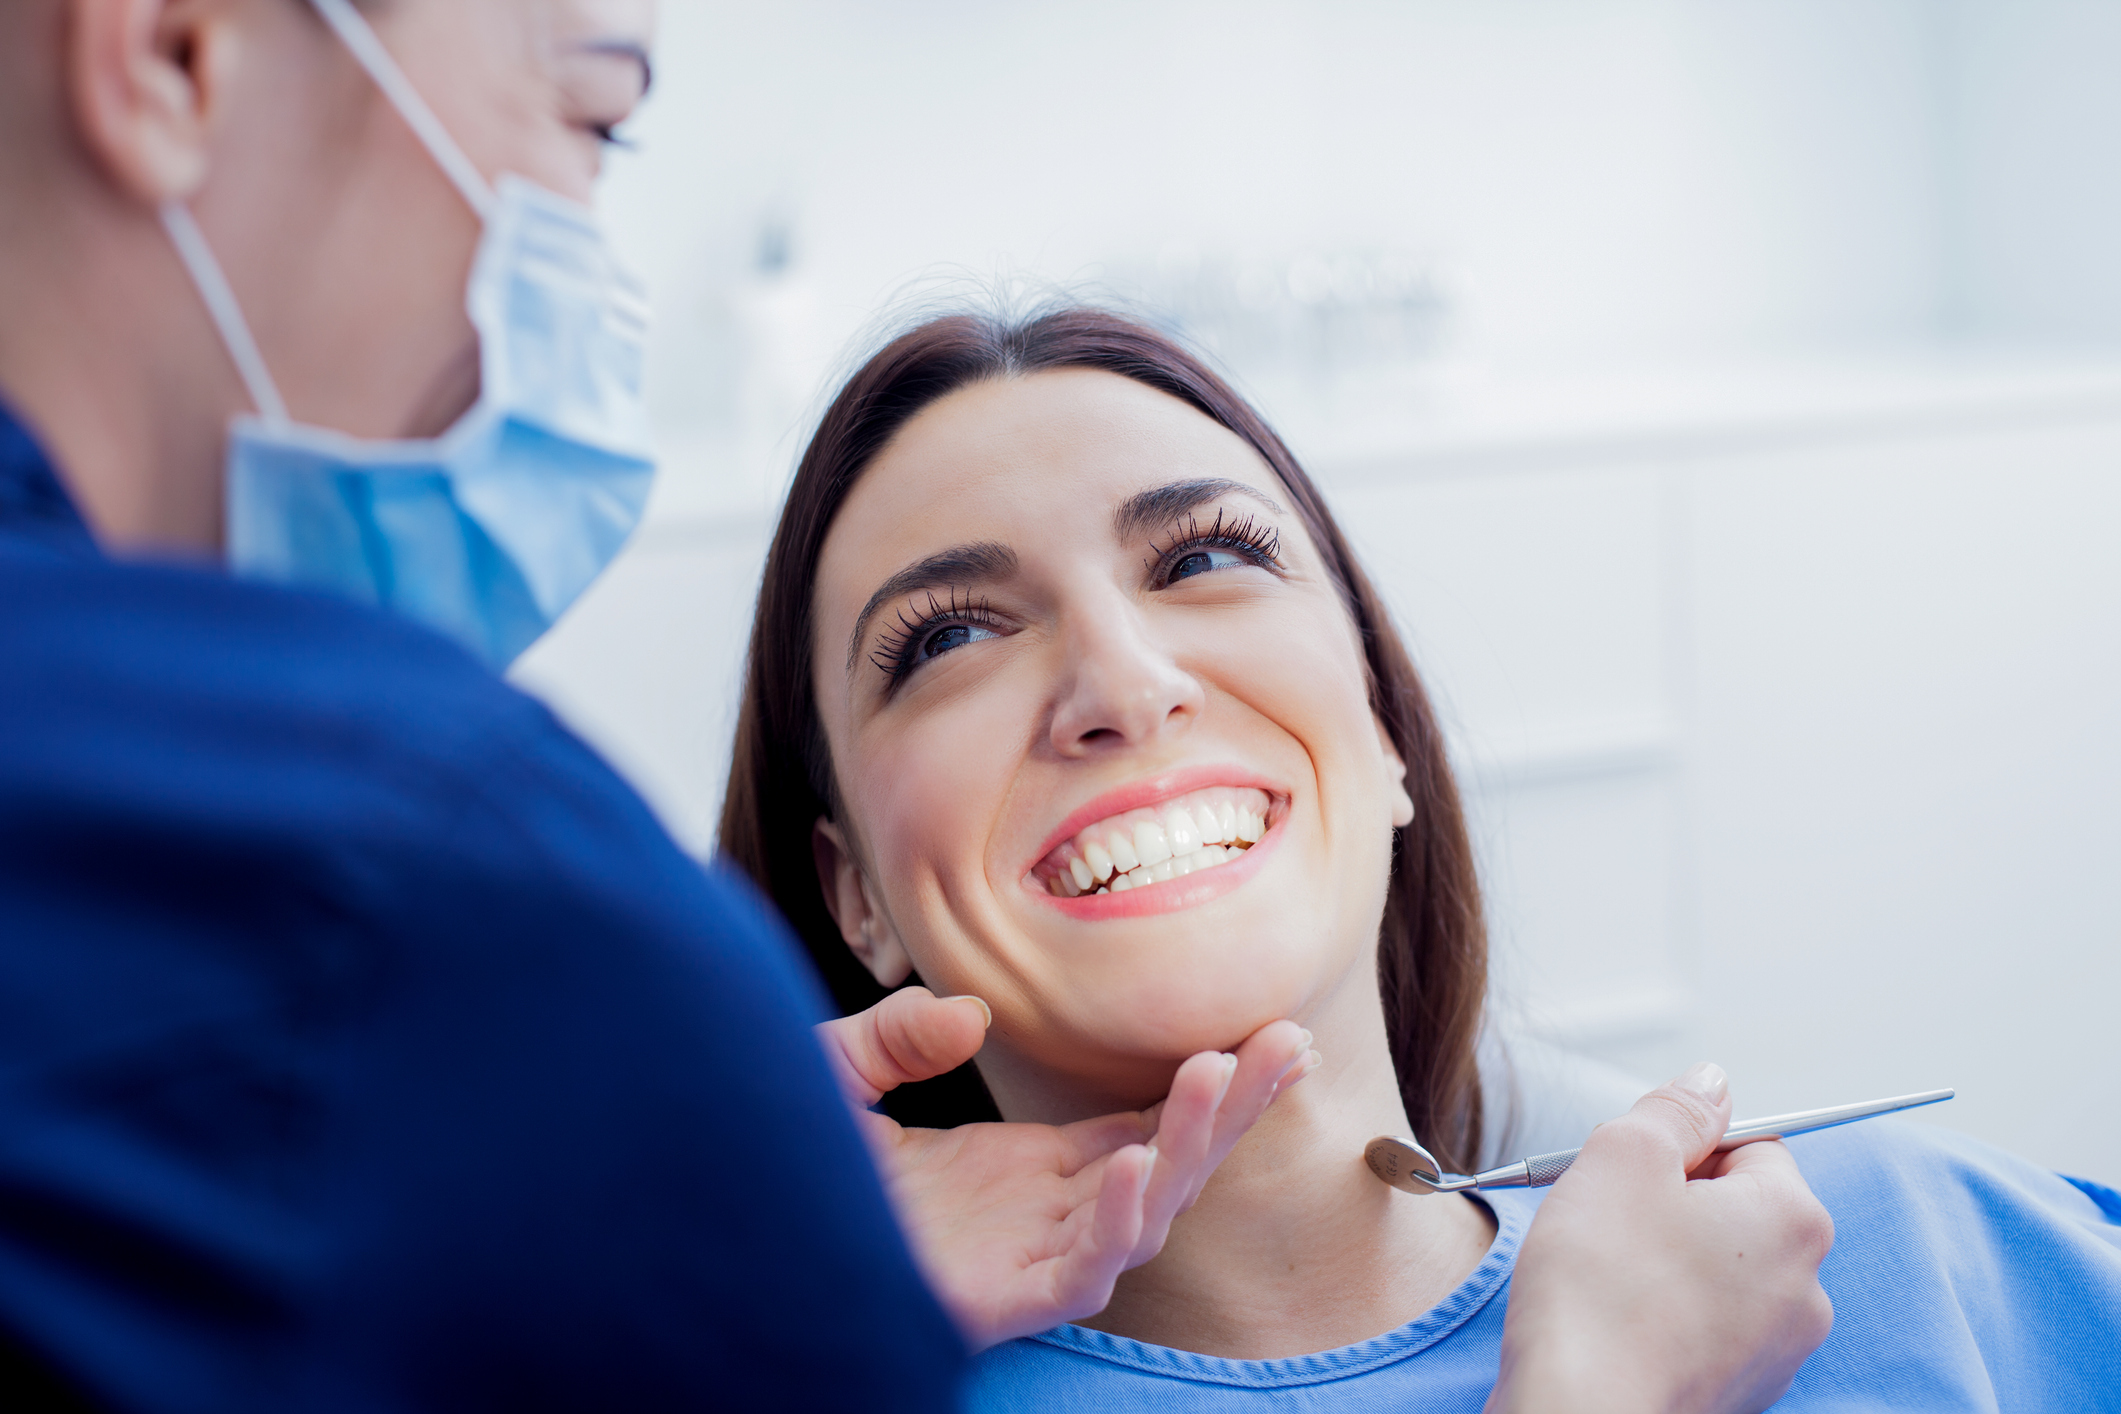 A female patient getting her teeth professionally cleaned at a dentist's office.